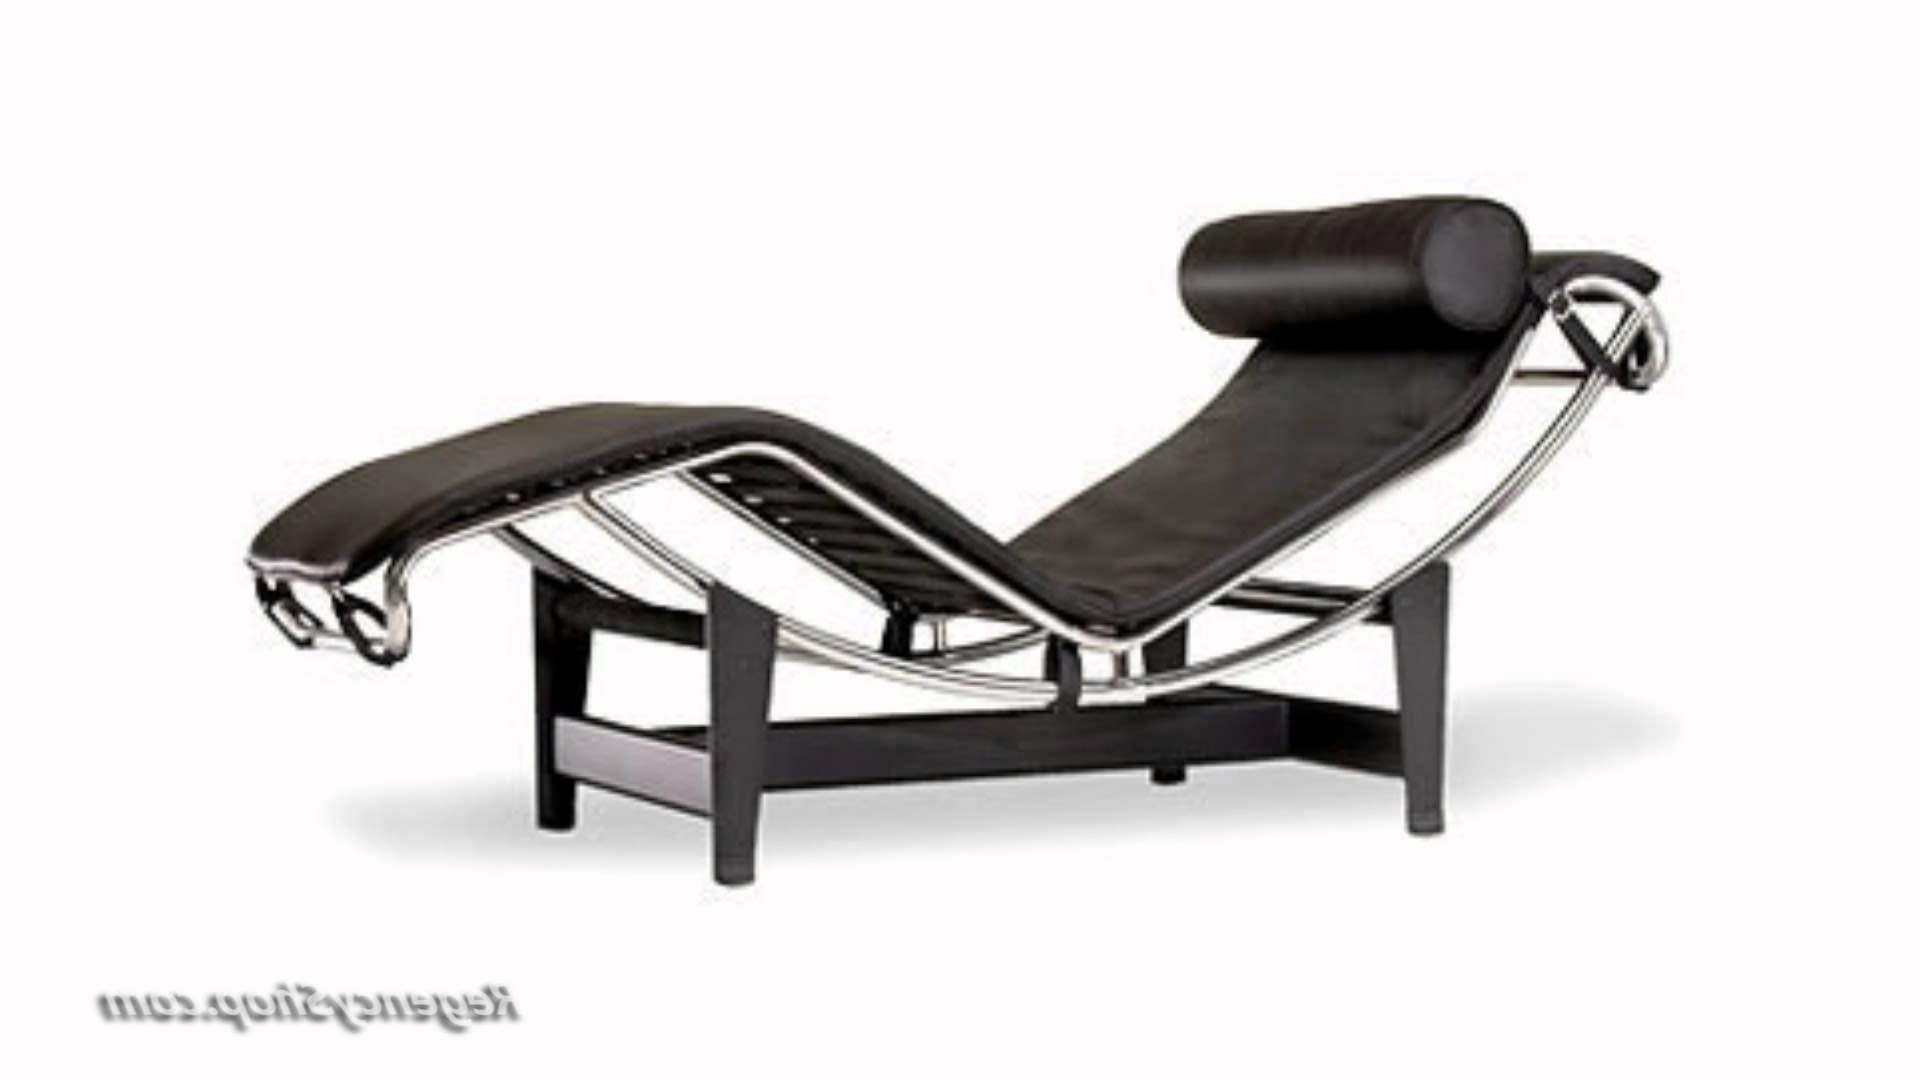 Le Corbusier Chaise Lounges In Trendy Le Corbusier Lc4 Chaise Lounge Chair – Regencyshop – Youtube (View 9 of 15)